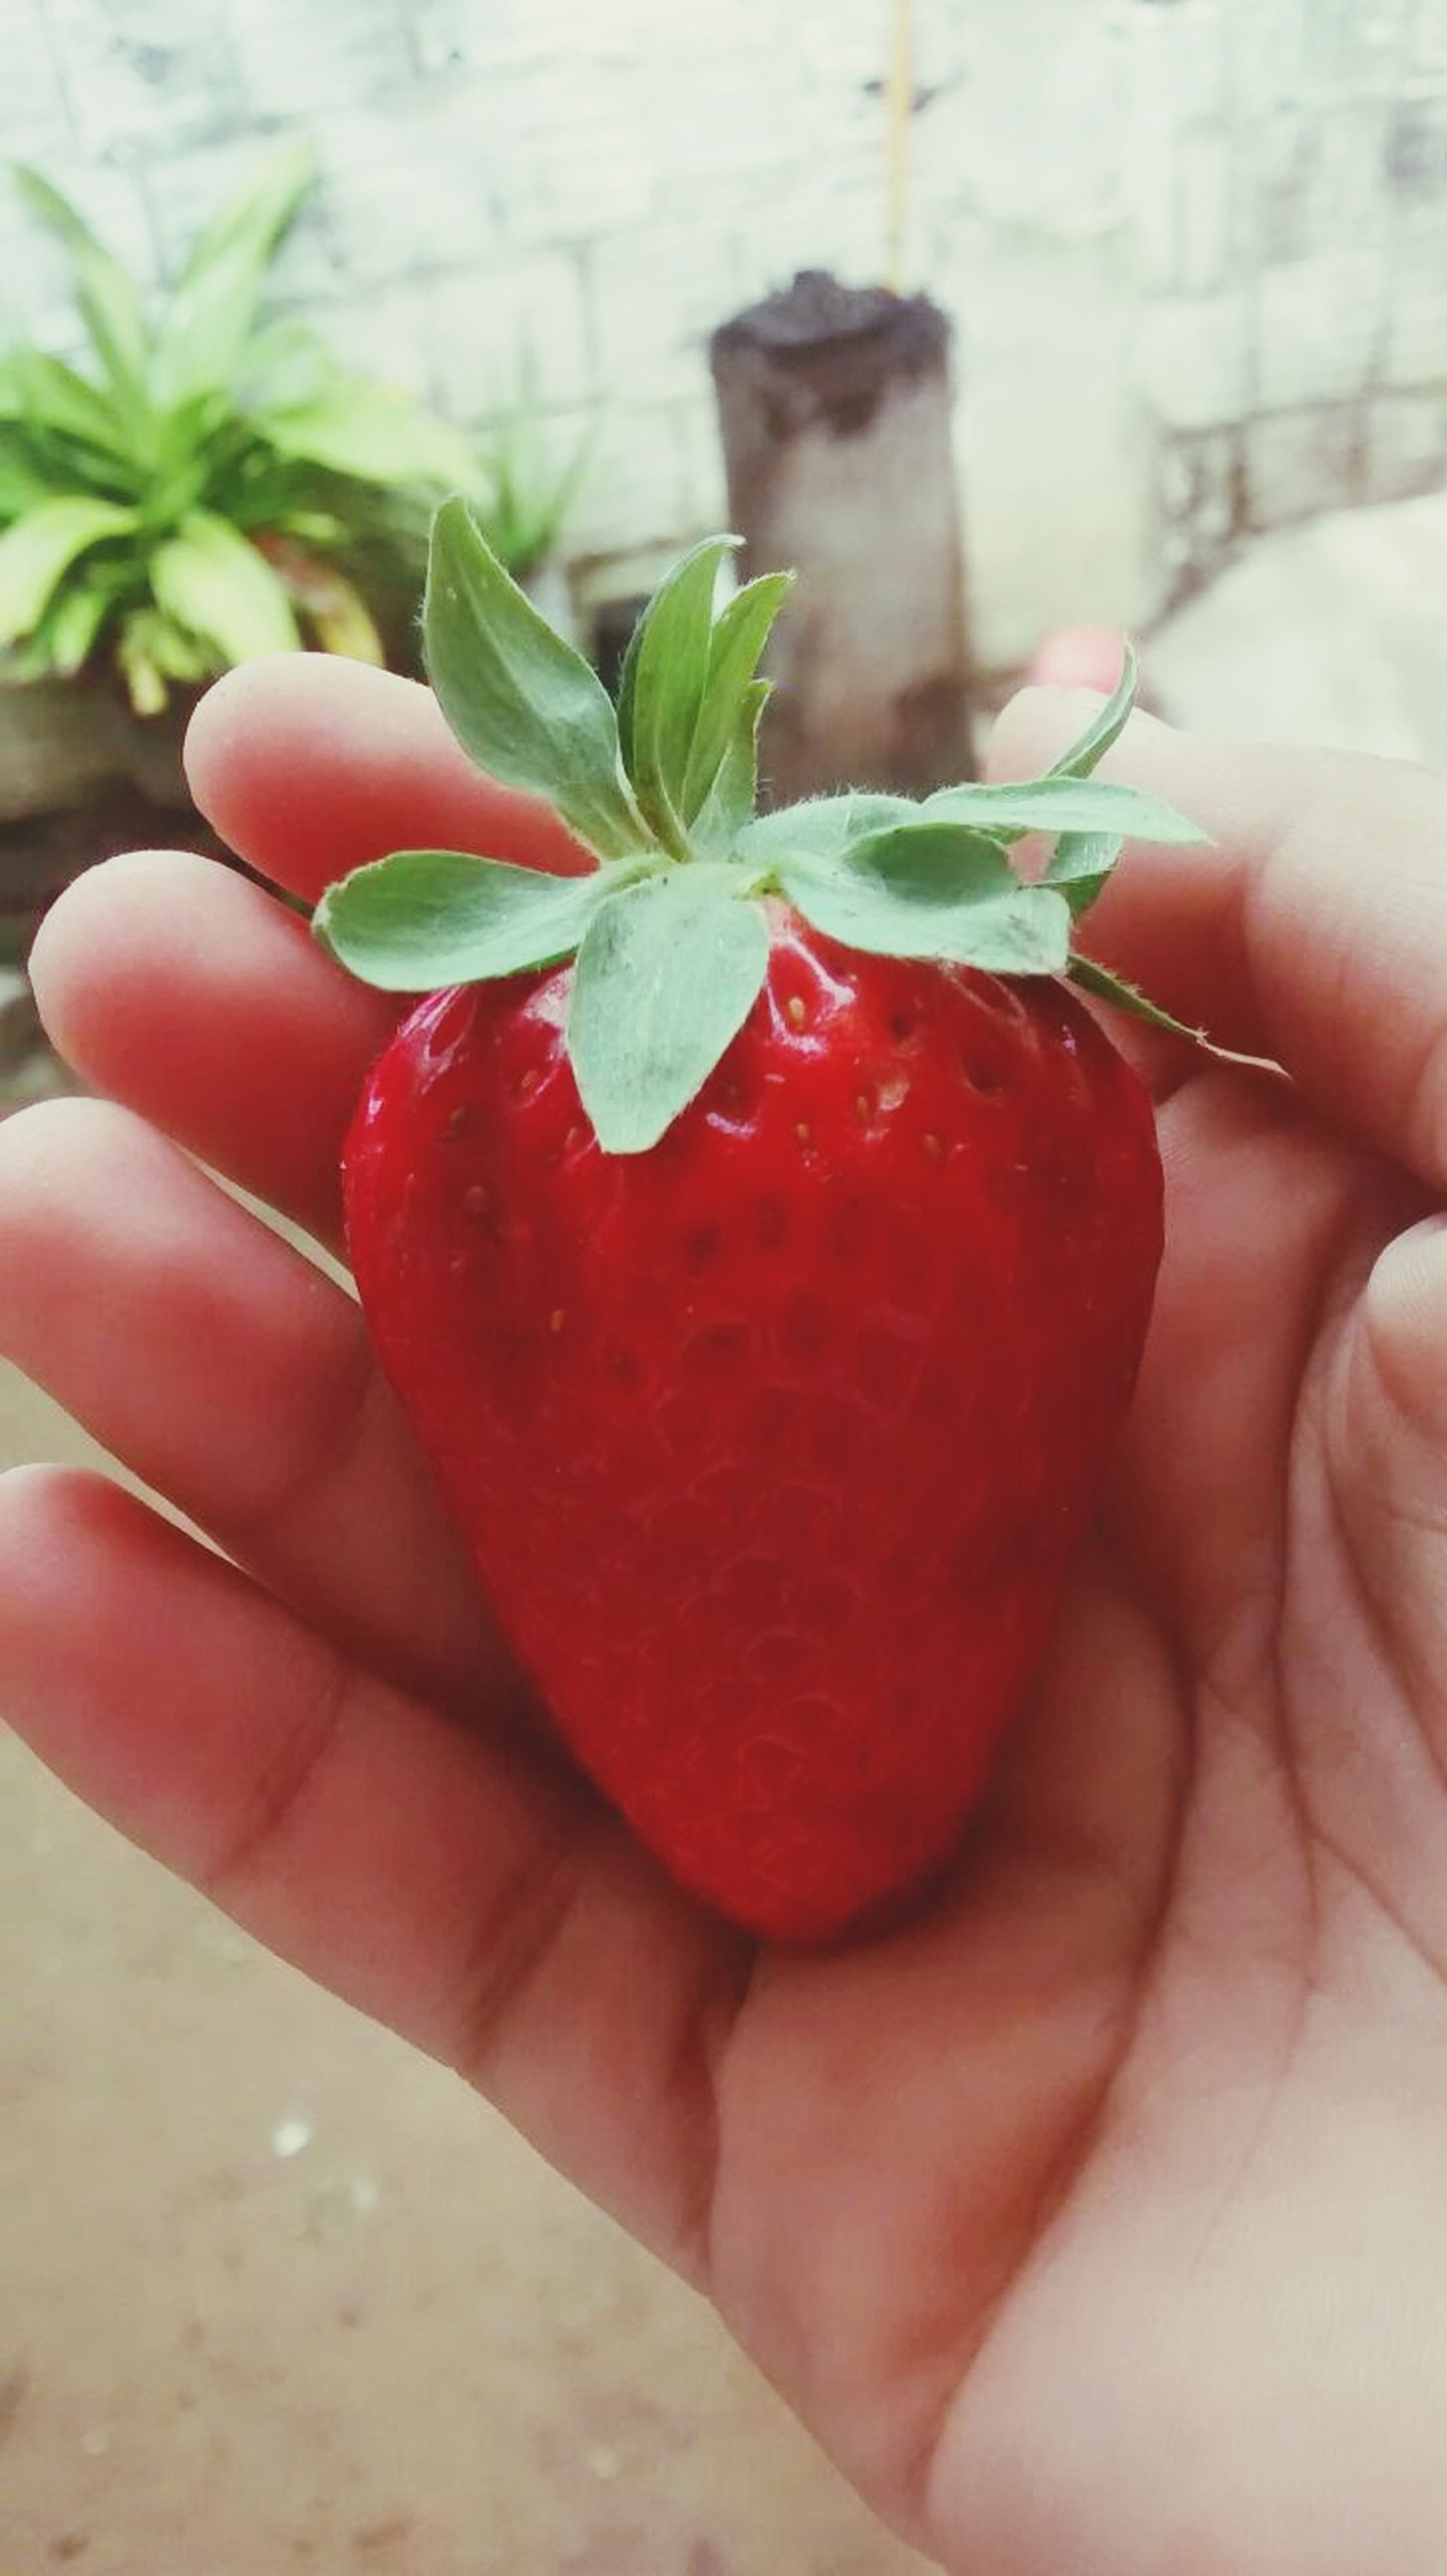 person, food and drink, fruit, holding, food, freshness, red, healthy eating, part of, cropped, strawberry, close-up, unrecognizable person, human finger, focus on foreground, personal perspective, organic